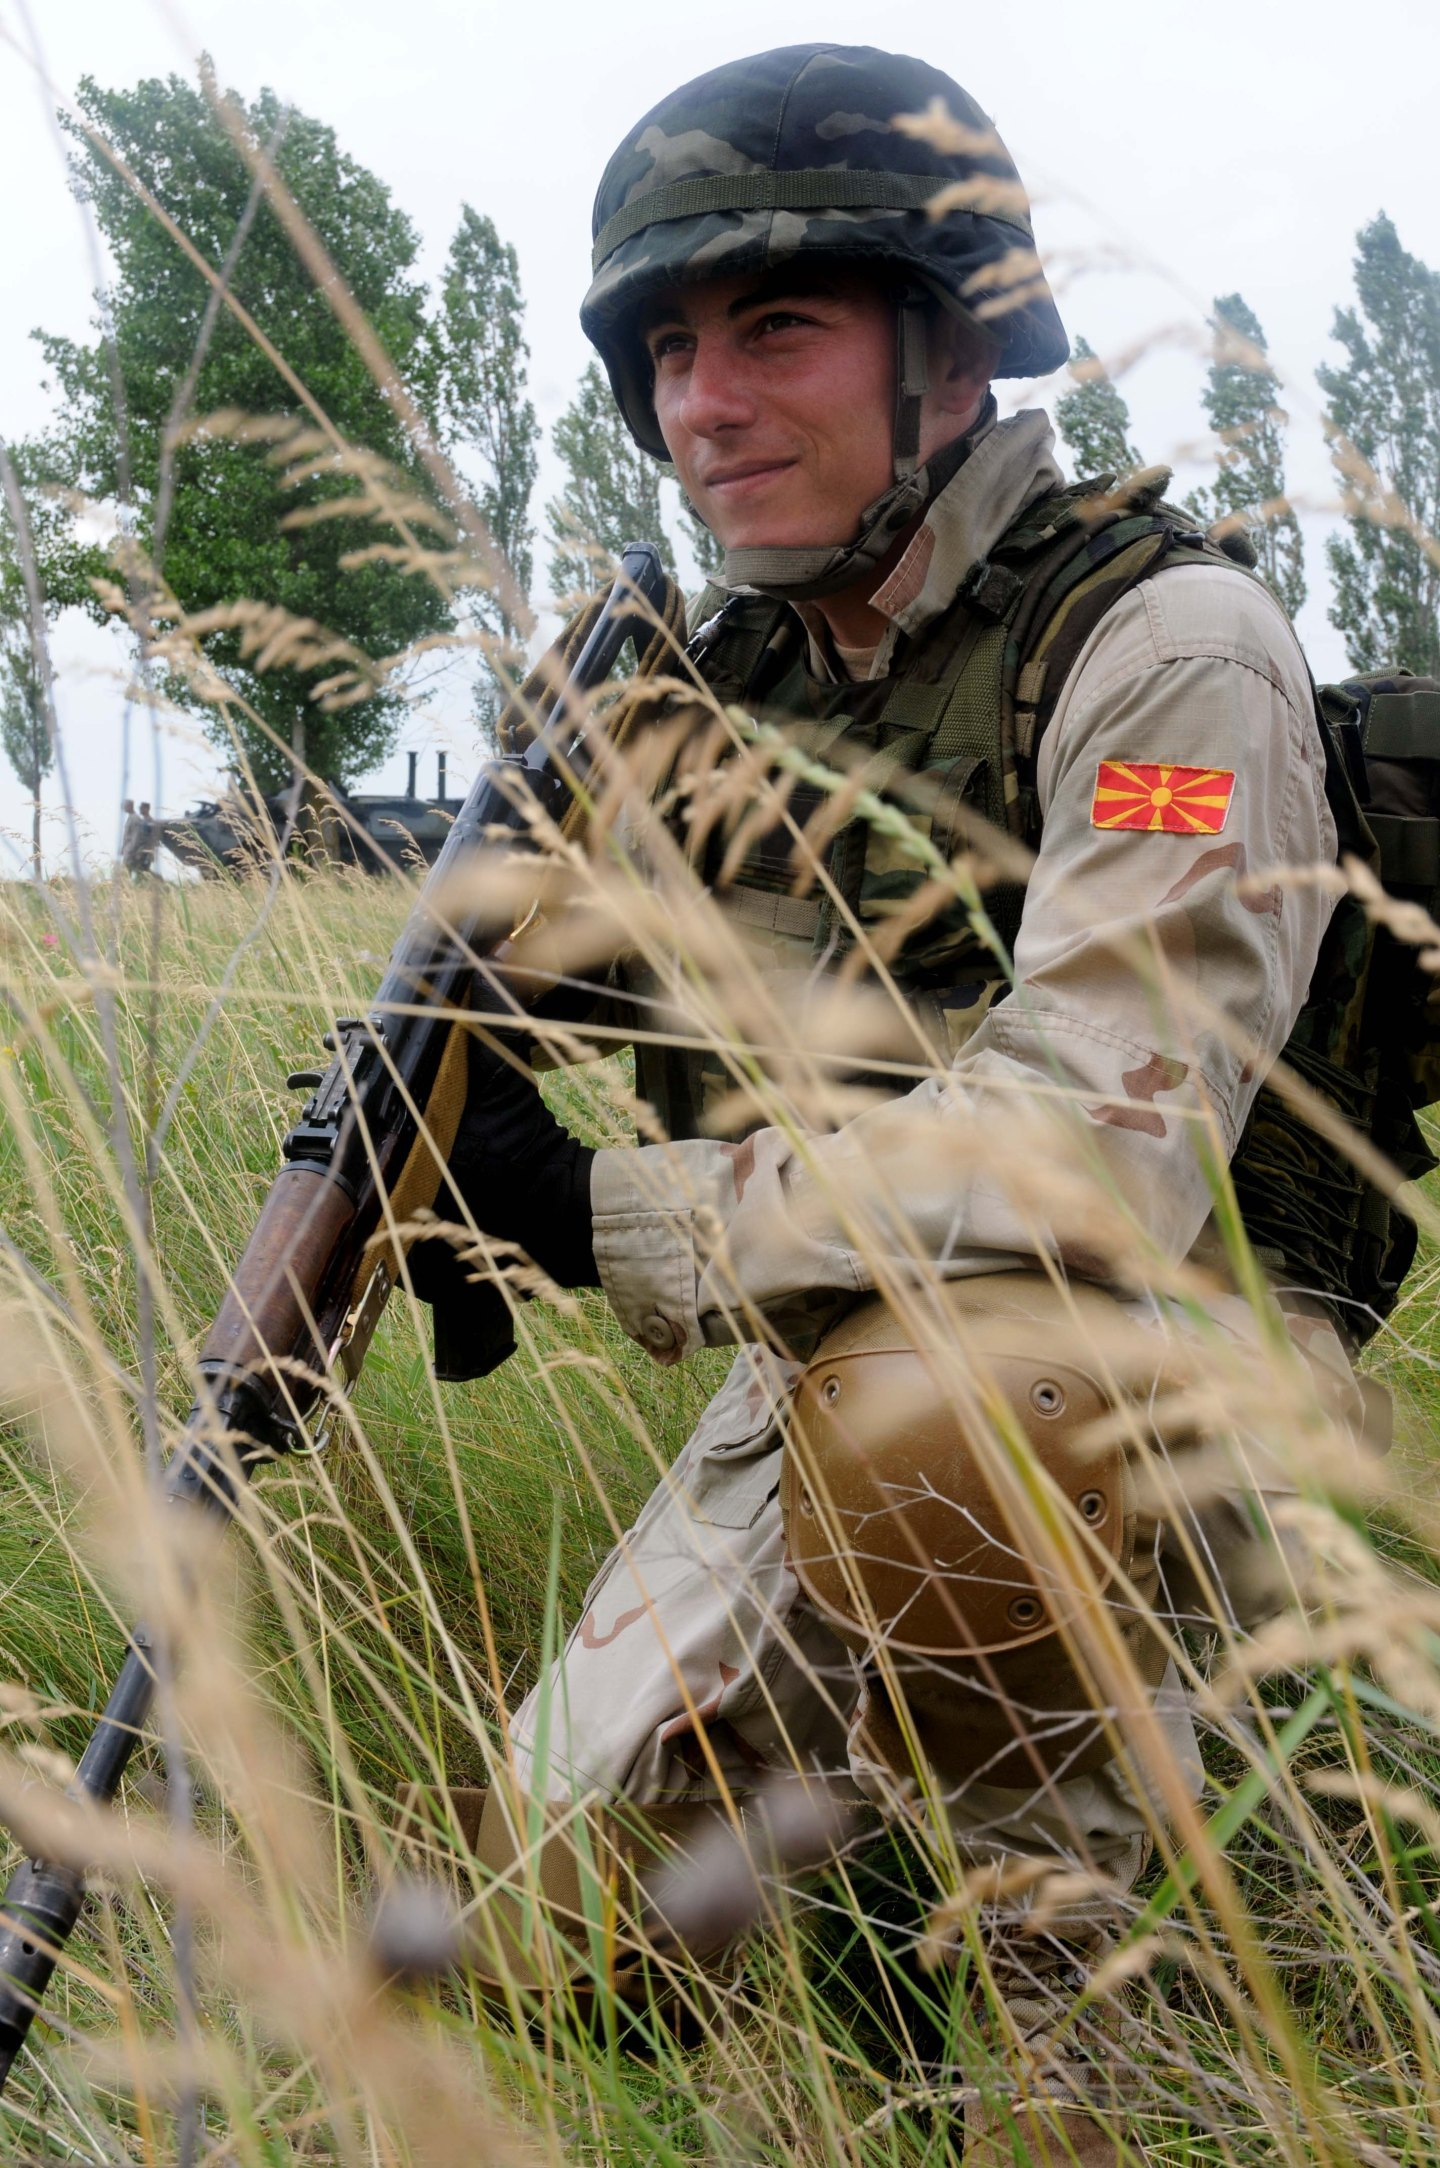 110611-N-FV216-174: SHIROKILAN, Ukraine (June 11, 2011) - A Macedonian marine provides extra countermeasure support during a joint land component demonstration as part of exercise Sea Breeze 2011. Air, land and naval forces from Azerbaijan, Algeria, Belgium, Denmark, Georgia, Germany, Macedonia, Moldova, Sweden, Turkey, Ukraine, the United Kingdom and the United States are participating in Sea Breeze, the largest multinational maritime exercise this year in the Black Sea, June 6-18, and is co-hosted by the Ukrainian and U.S. Navies. (U.S. Navy photo by Mass Communication Specialist 3rd Class Caitlin Conroy/RELEASED)